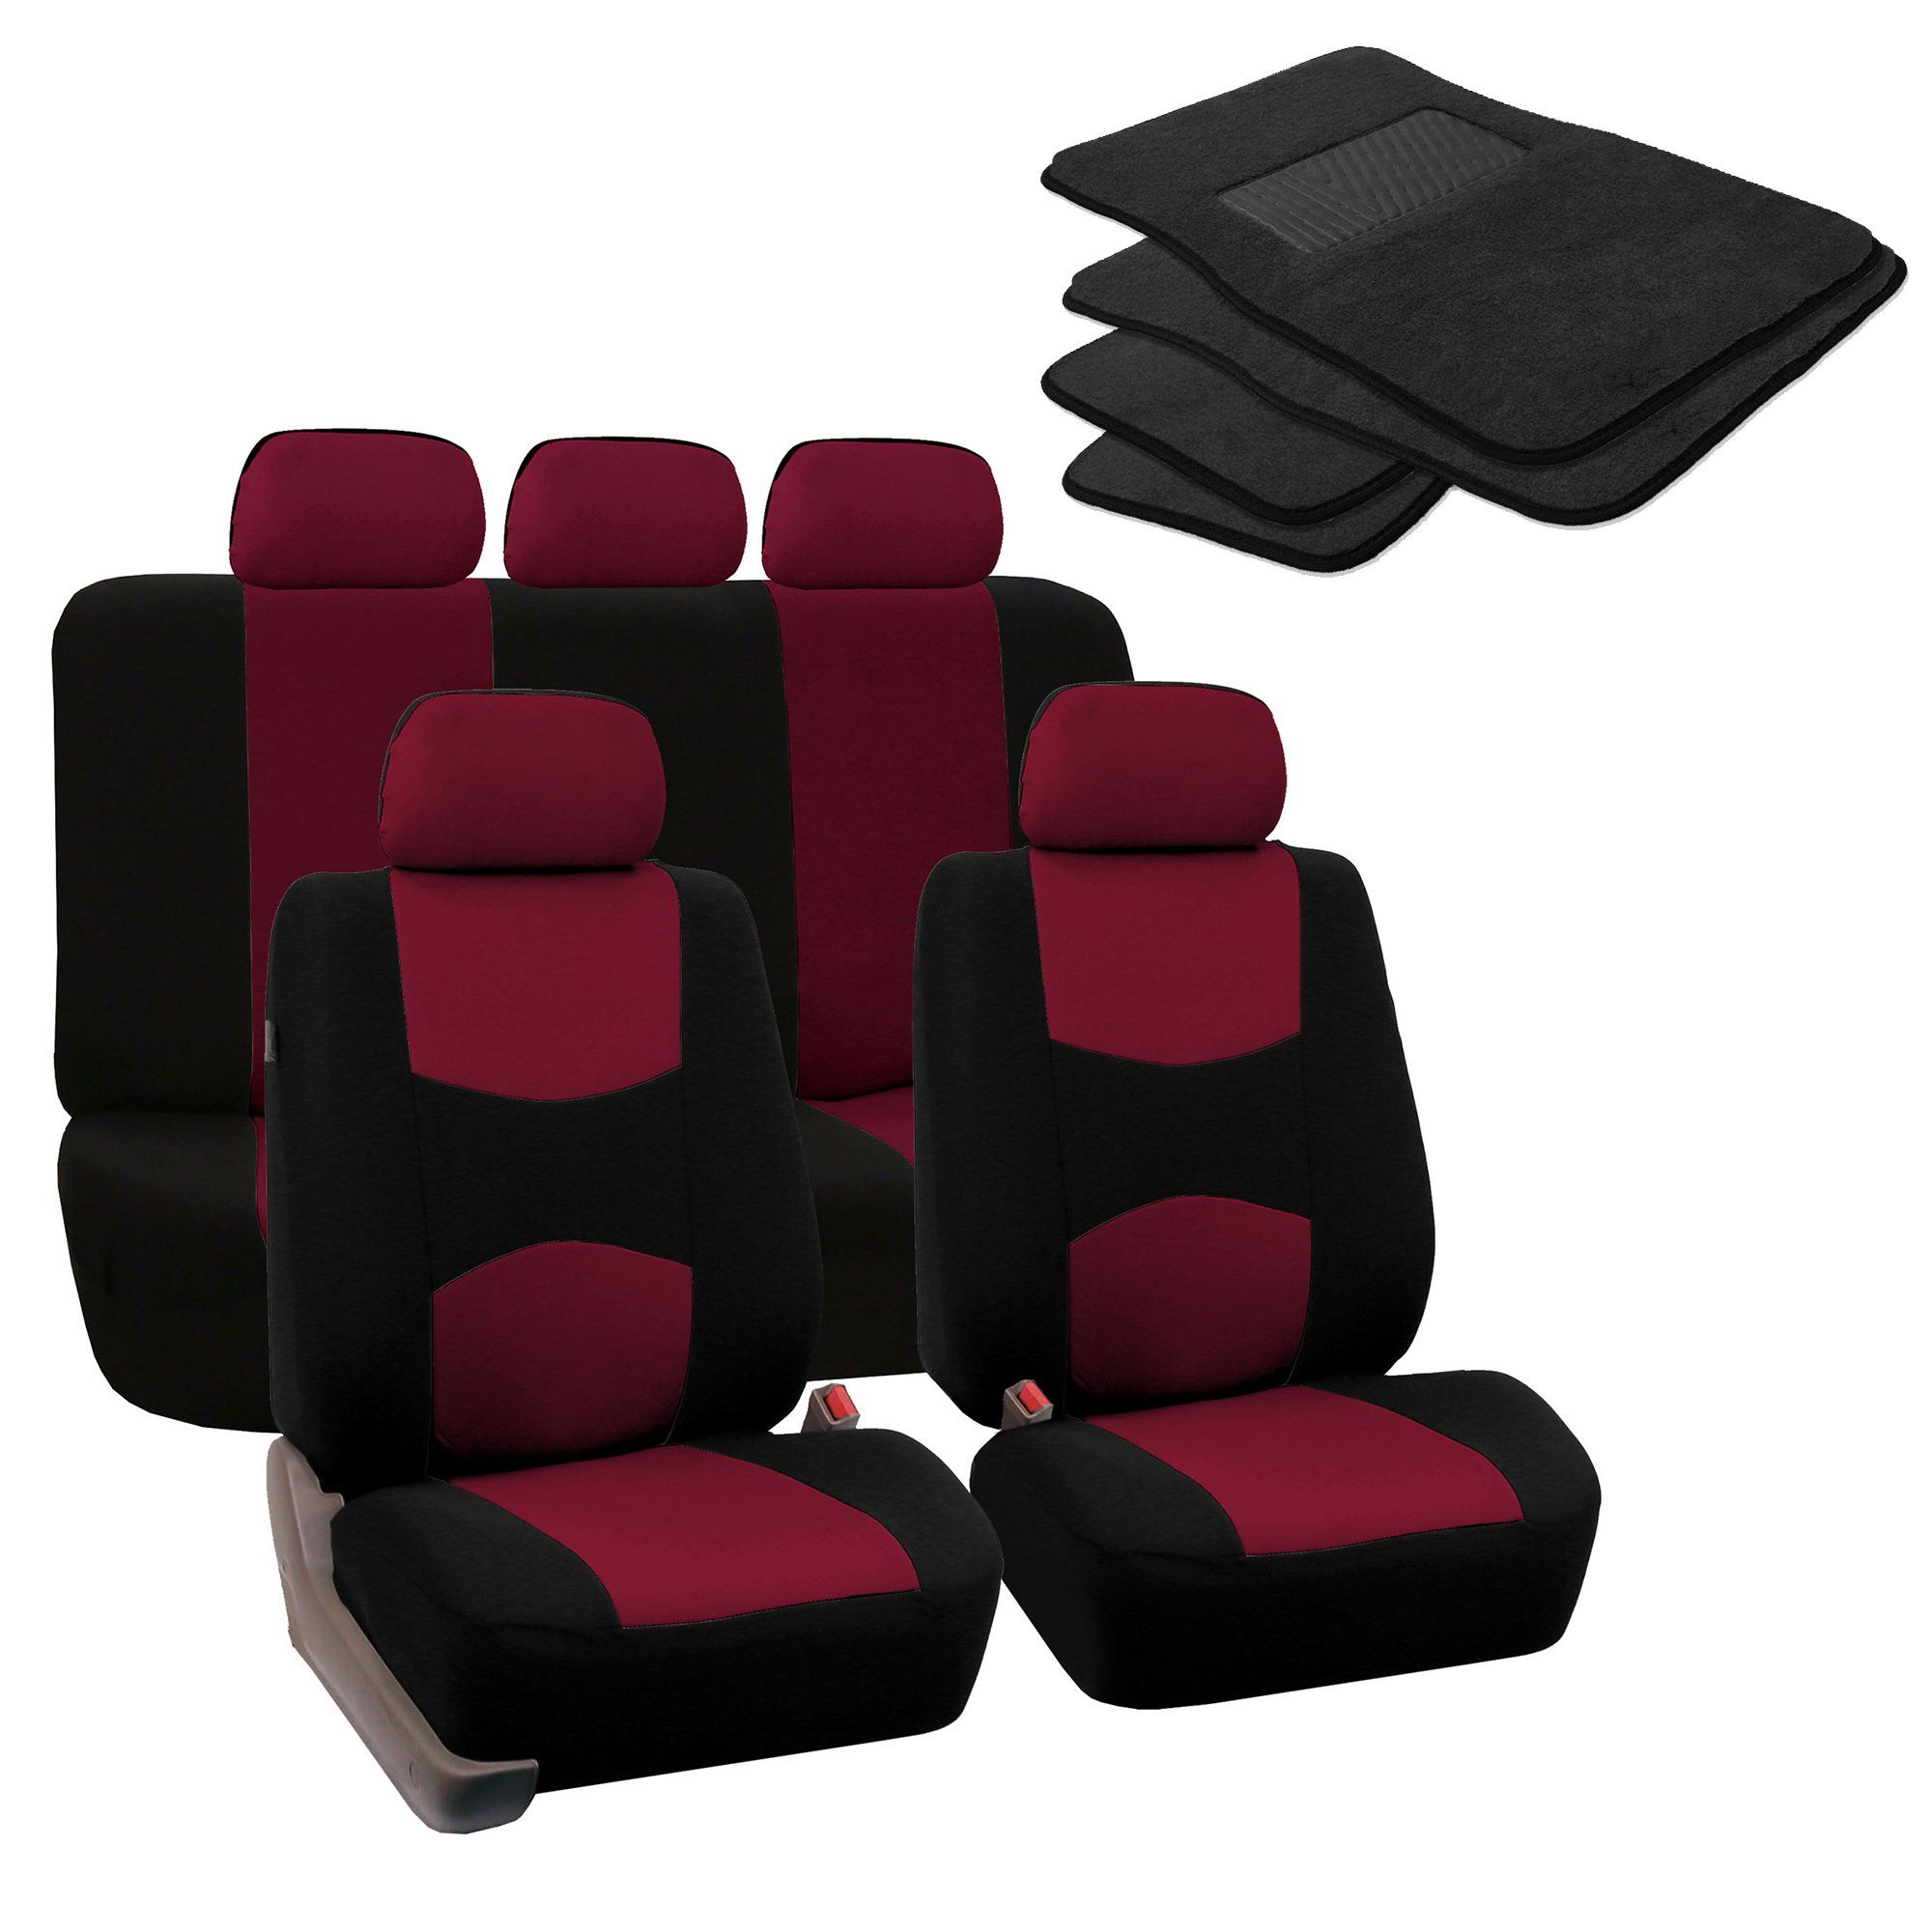 KUST rzd3192r Car seat Covers Custom Fit Seat Covers Only Fit for Toyota RAV4 Hybrid 2016 2017 2018,Leather Auto Seat Covers for SUV Full Set 4pcs Saddle Cover,4pcs Back Cover,5pcs Headrest Cover